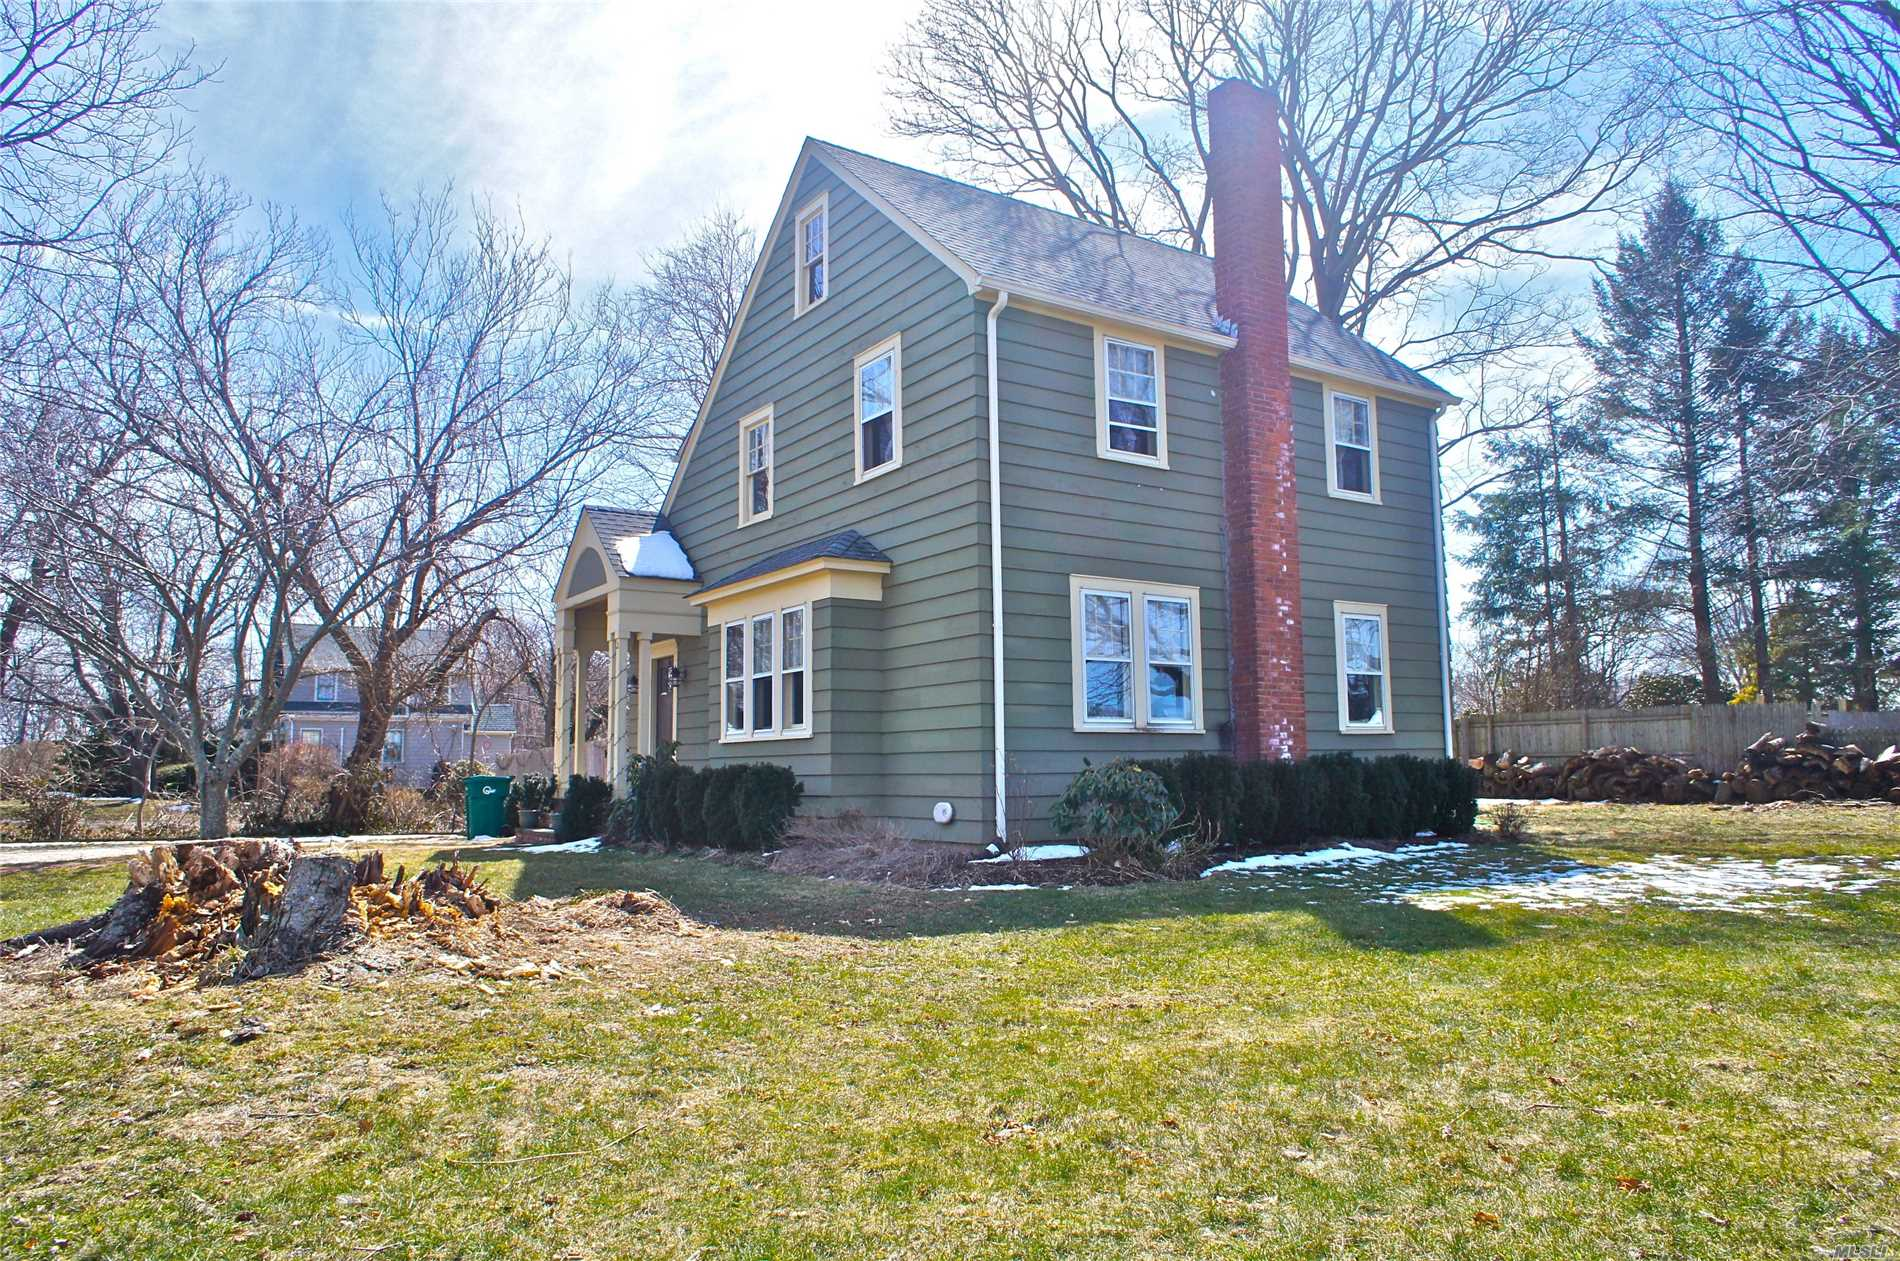 Photo of home for sale at 2490 Pike St, Mattituck NY